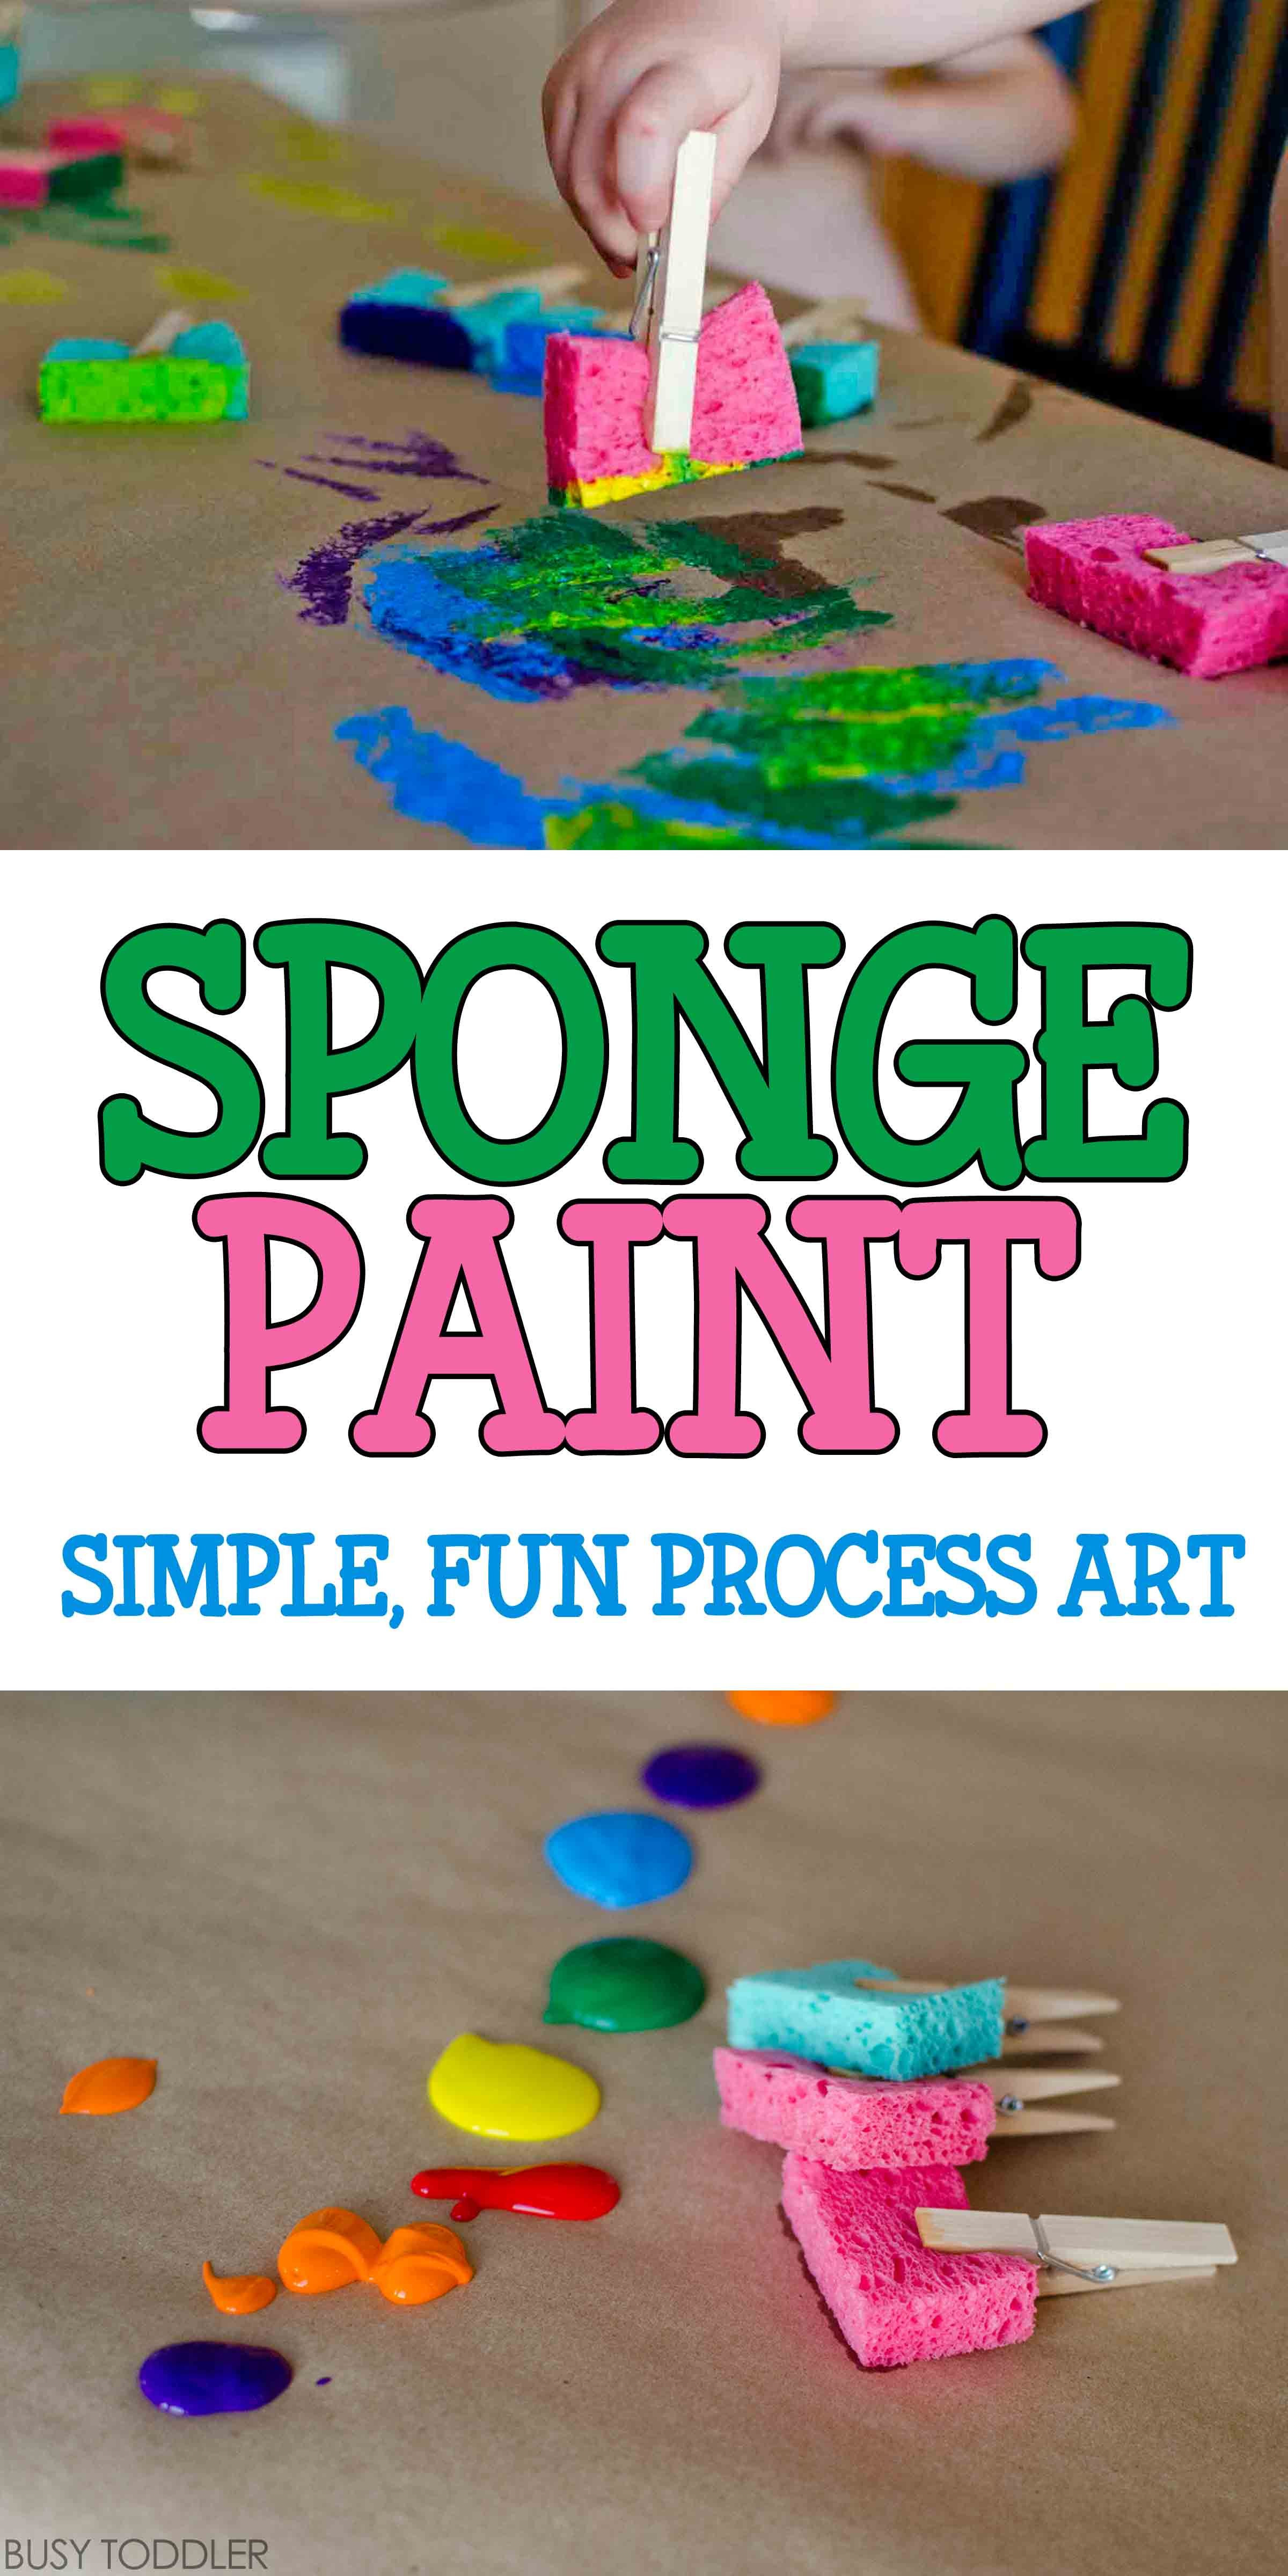 Best ideas about Fun Art Projects For Preschoolers . Save or Pin Sponge Painting Process Art BUSY TODDLER Now.